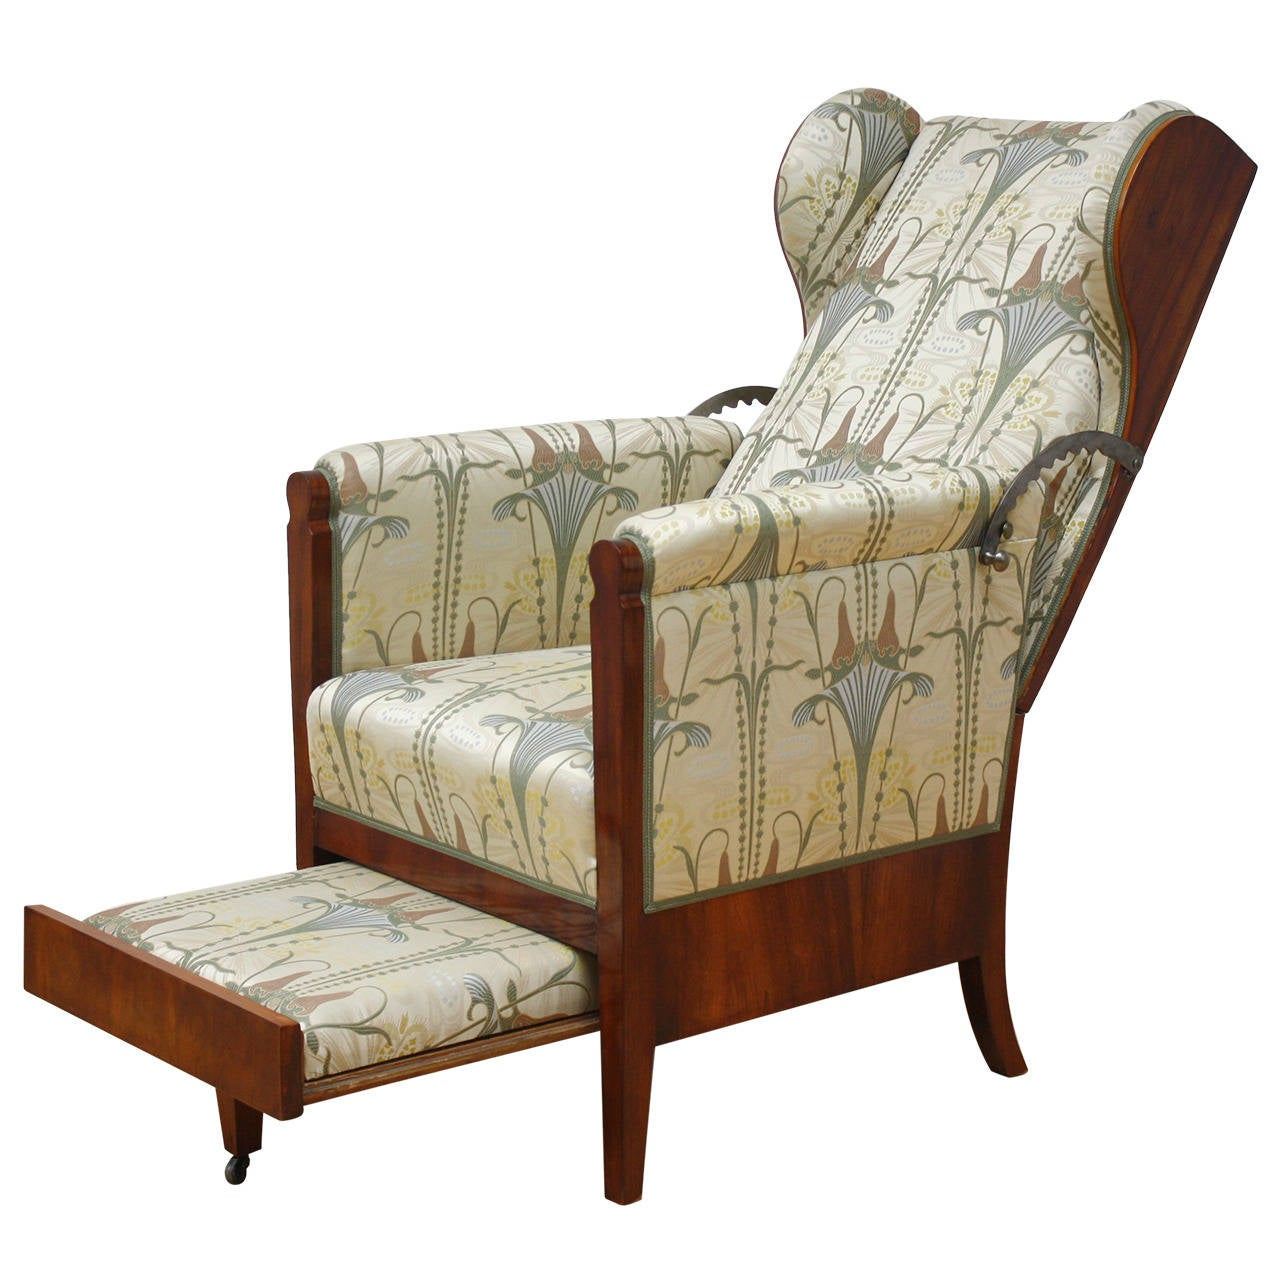 19th Century, Unusual Austrian Biedermeier Metamorphic Reclining Armchair  For Sale